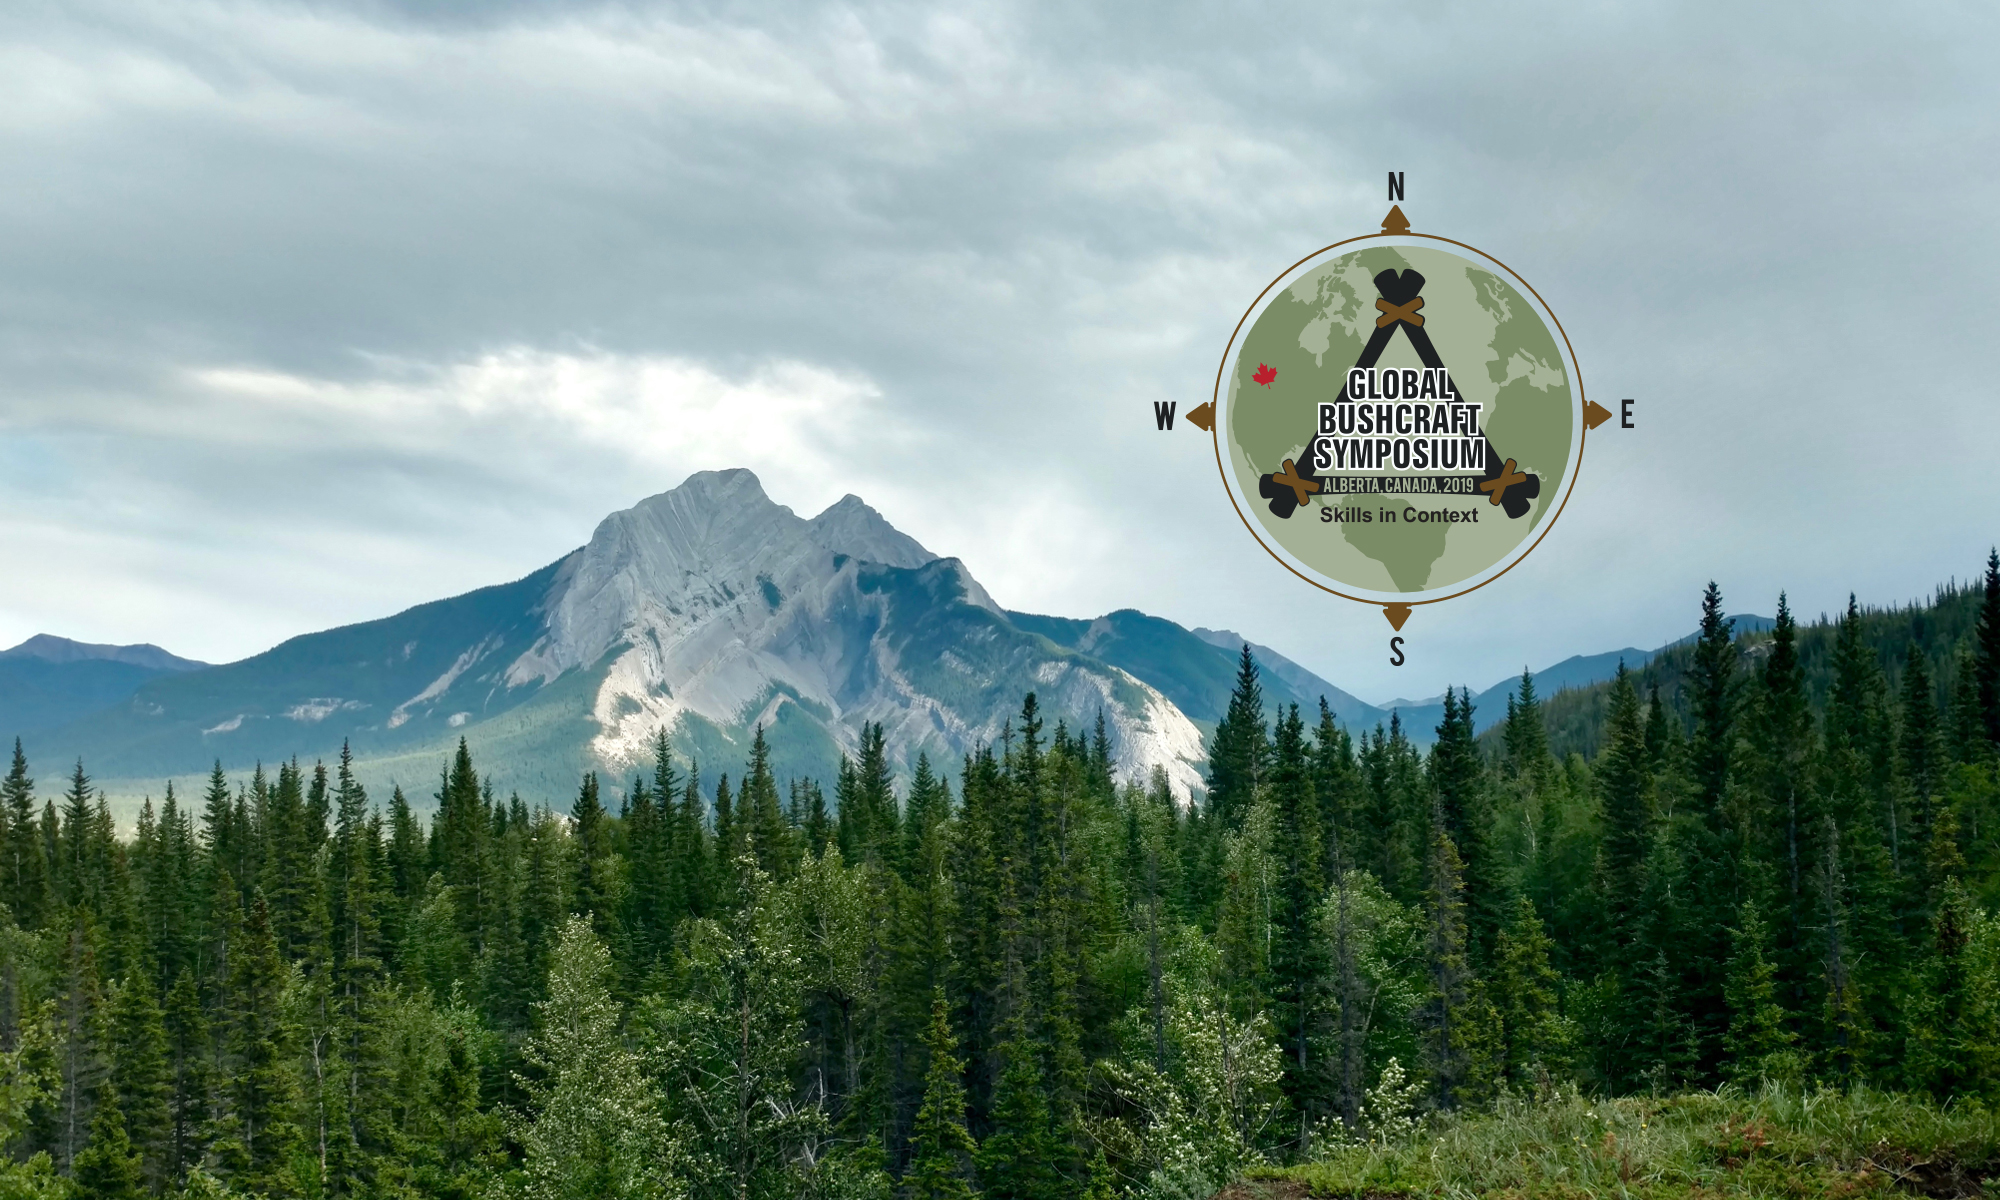 Global Bushcraft Symposium 2019